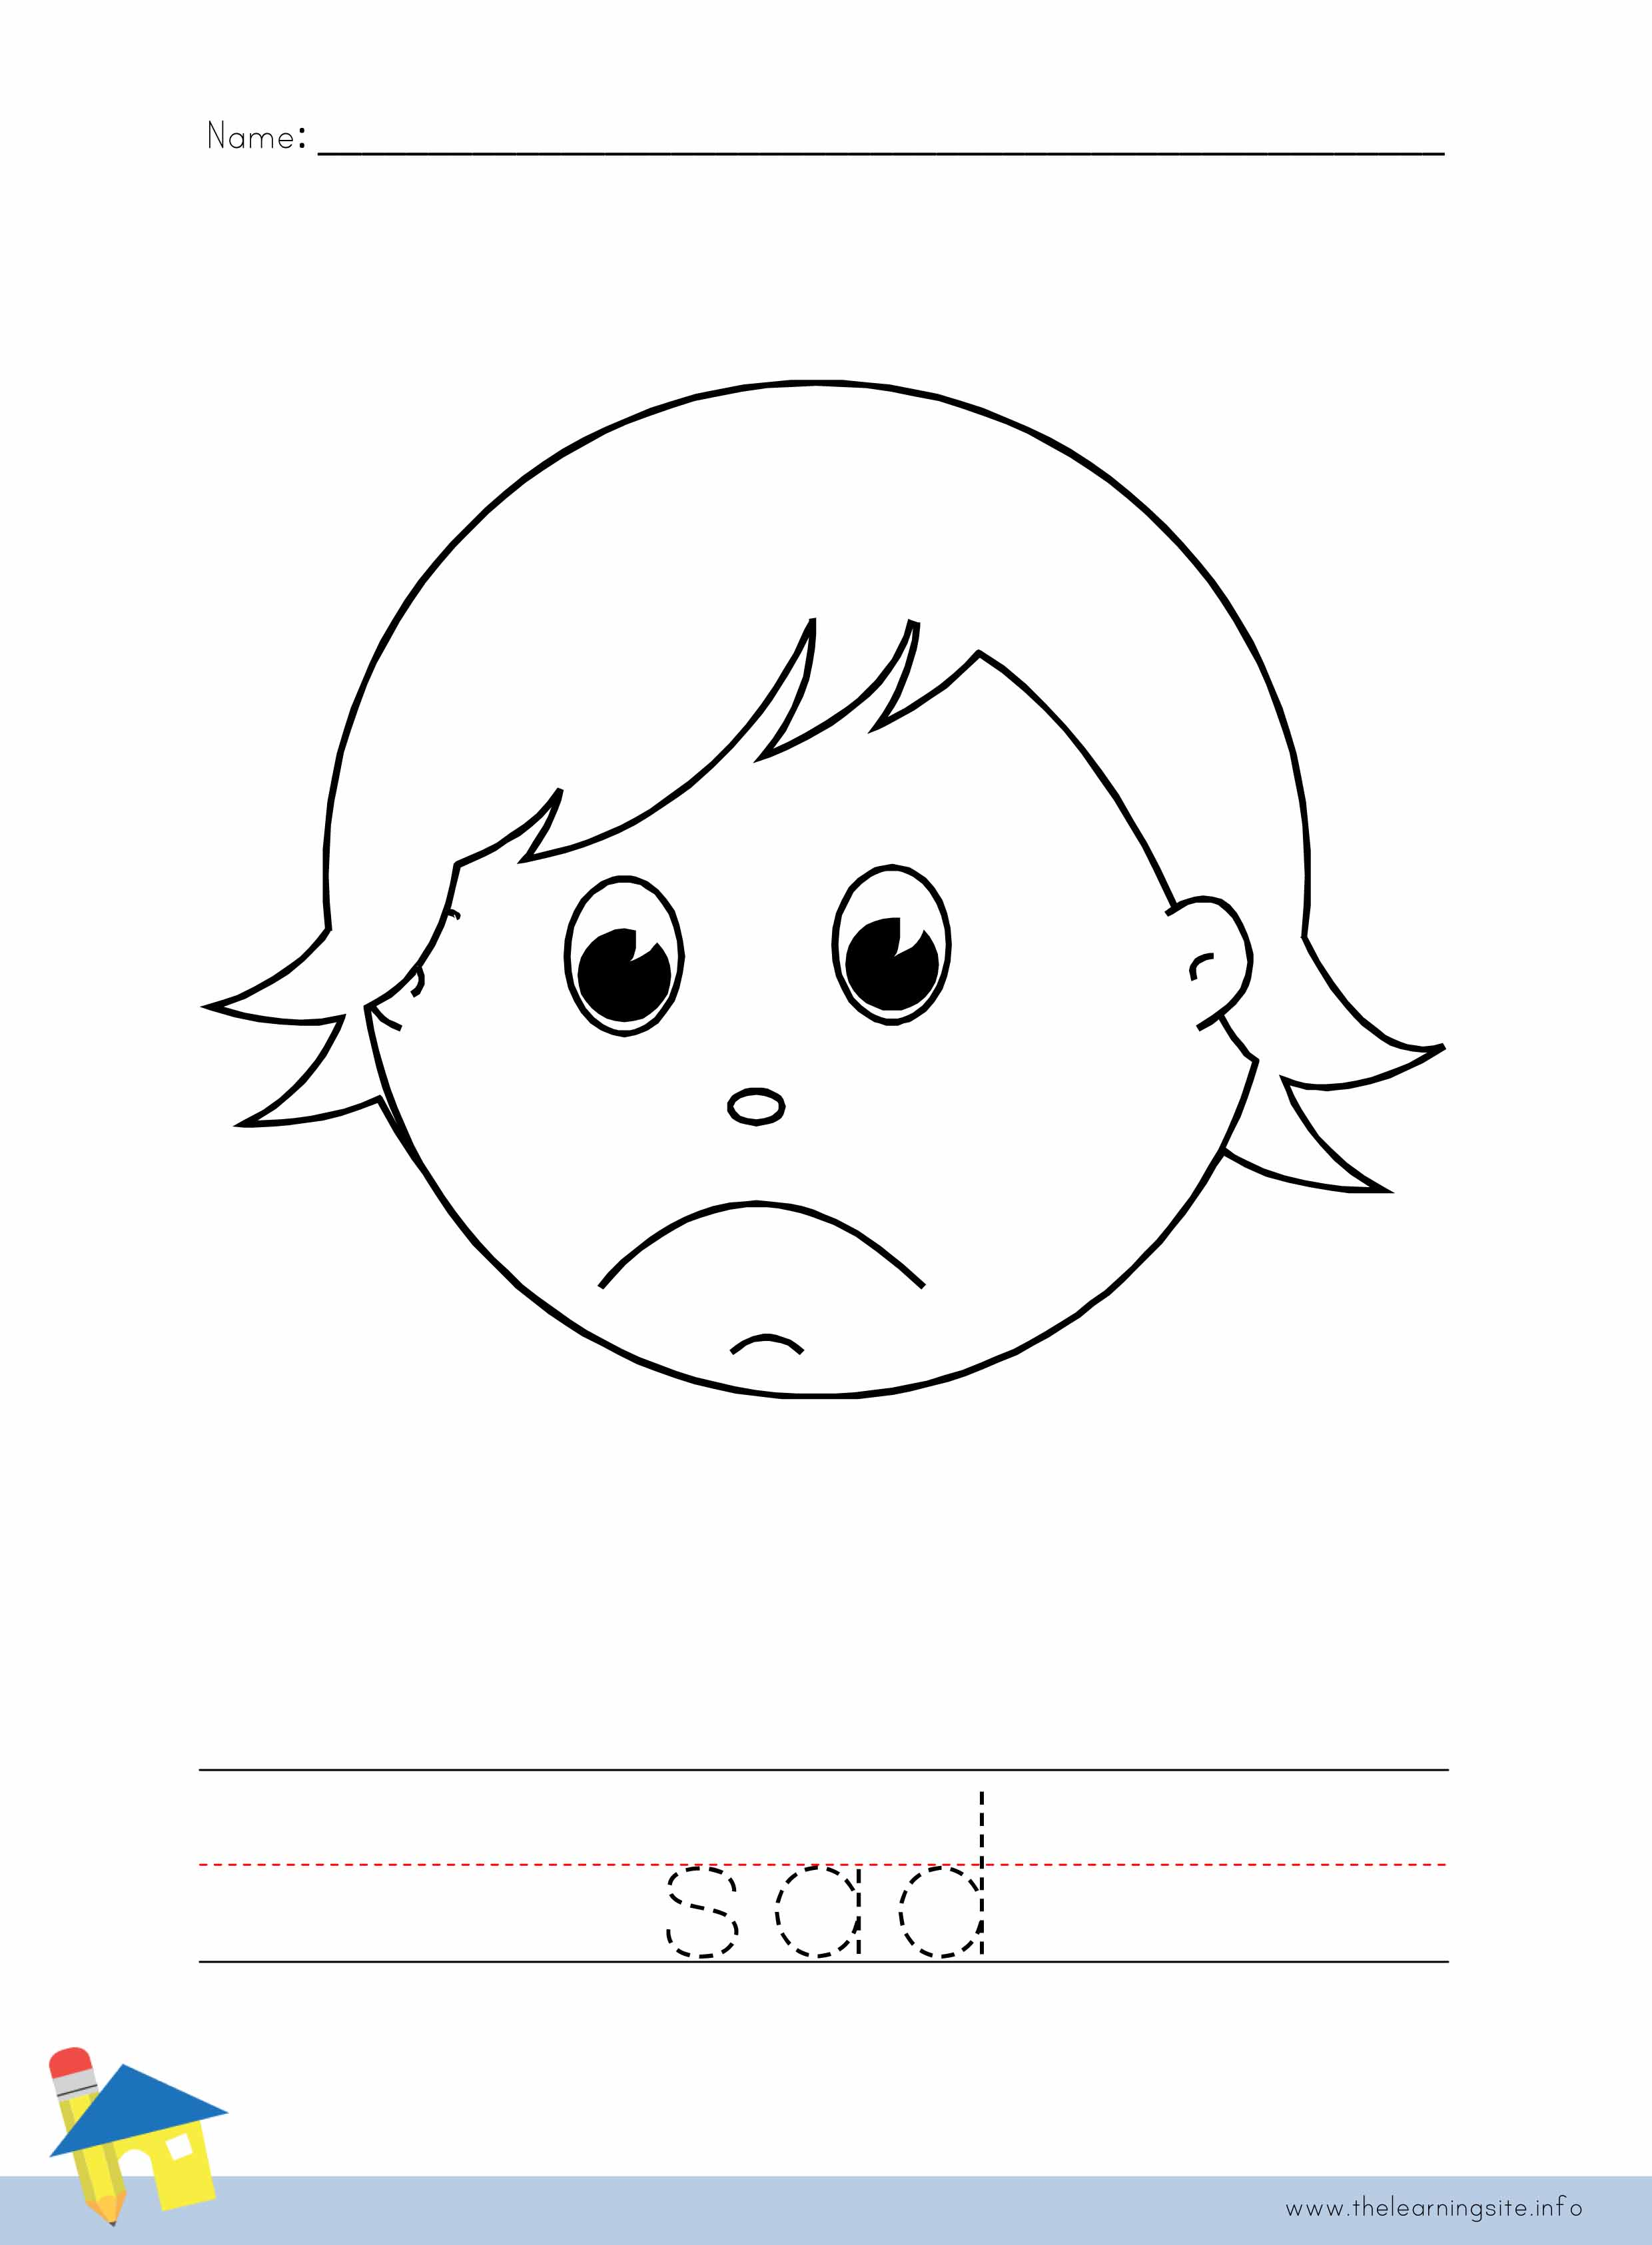 Sad Face Worksheet : The learning site